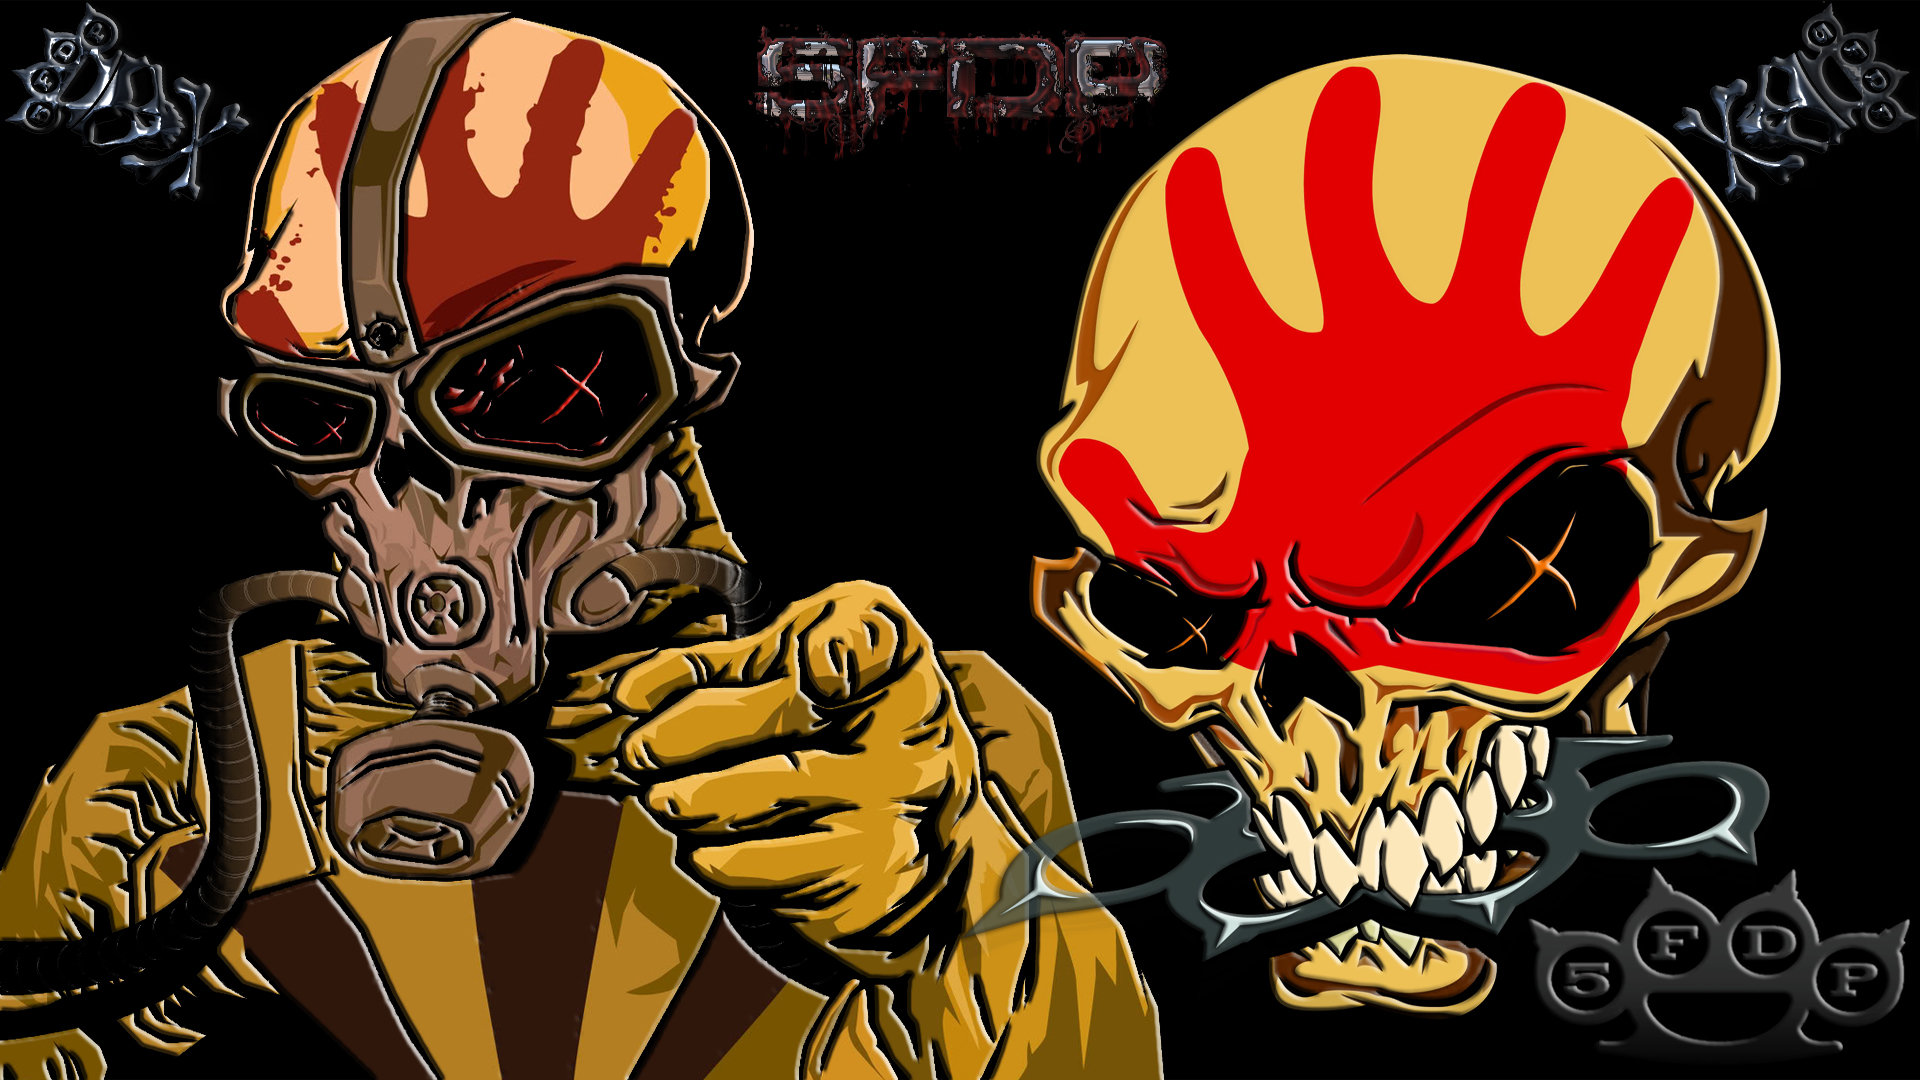 Five Finger Death Punch Ffdp Wallpapers Hd For Desktop Backgrounds